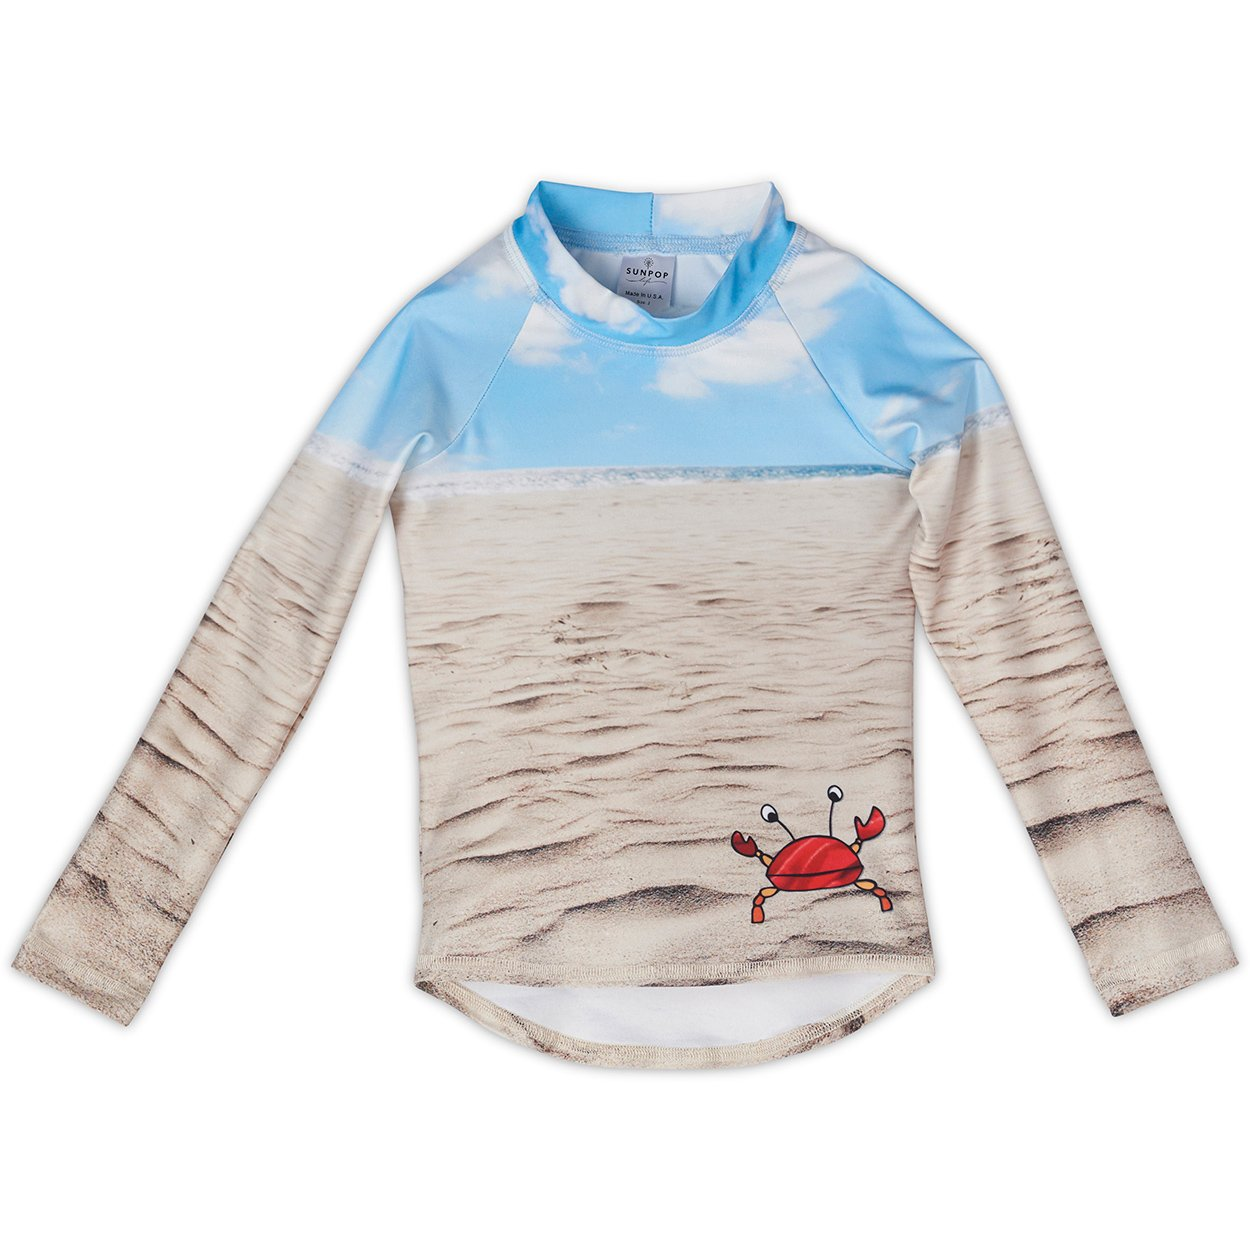 Sunny Crab Rash Guard Top UPF 50+